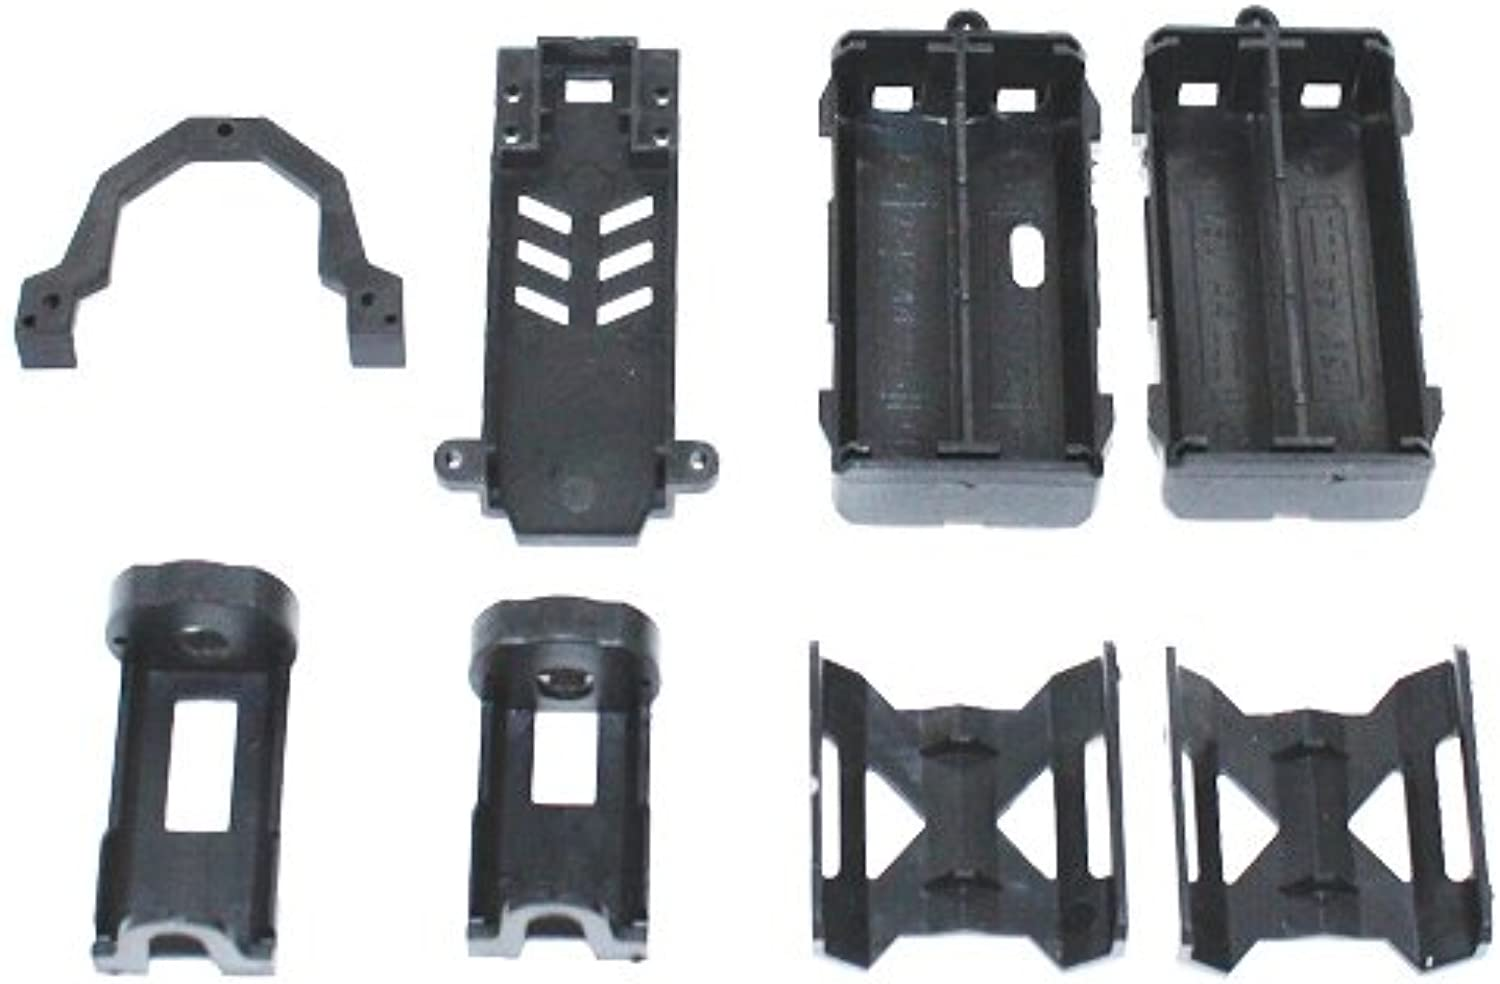 Redcat Racing Battery Compartment Assembly, PCB Plate, PCB Mount and Upper Deck for Sumo RC